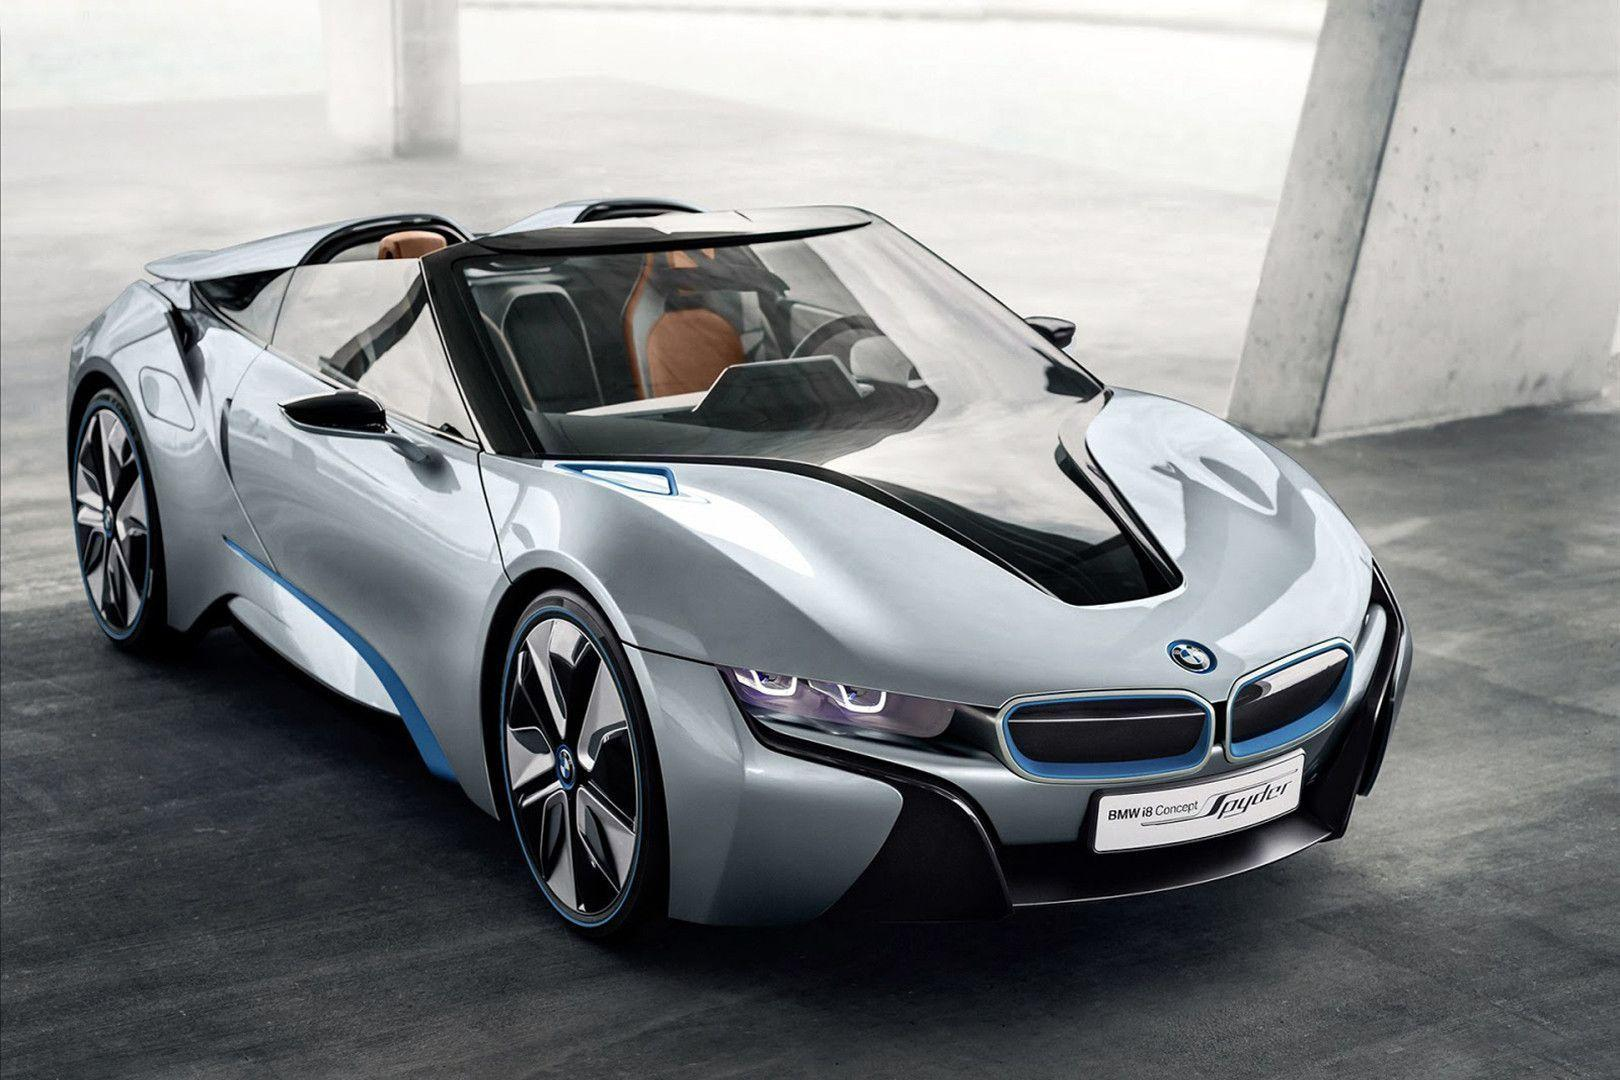 Bmw Car Latest Pics ~ Gallery For > Latest Cars Of Bmw